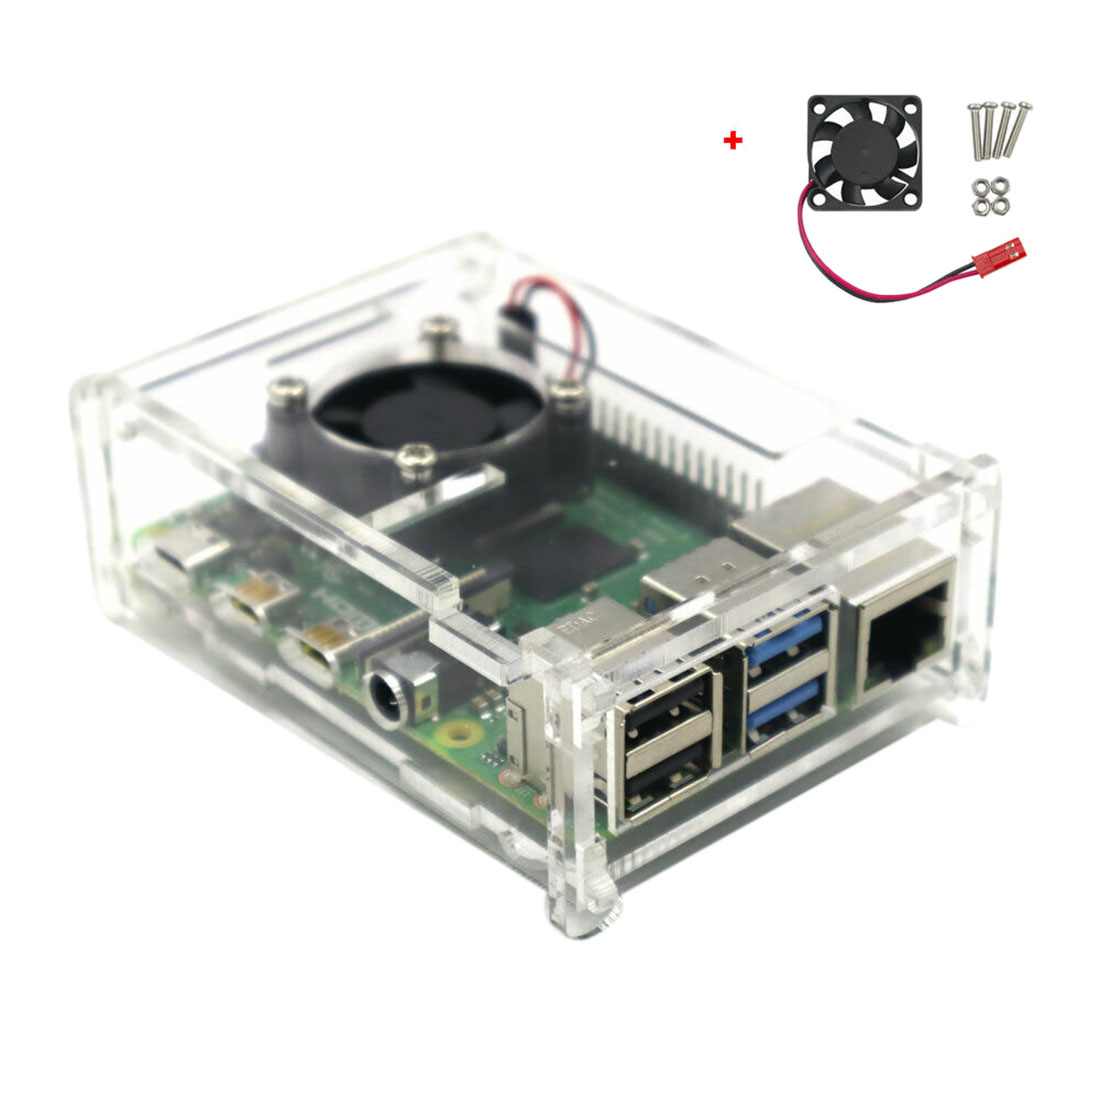 Clear Acrylic Case Enclosure Box With Cooling Fan For Raspberry Pi 4 Model B  Programmable Toys  Accessories - Black